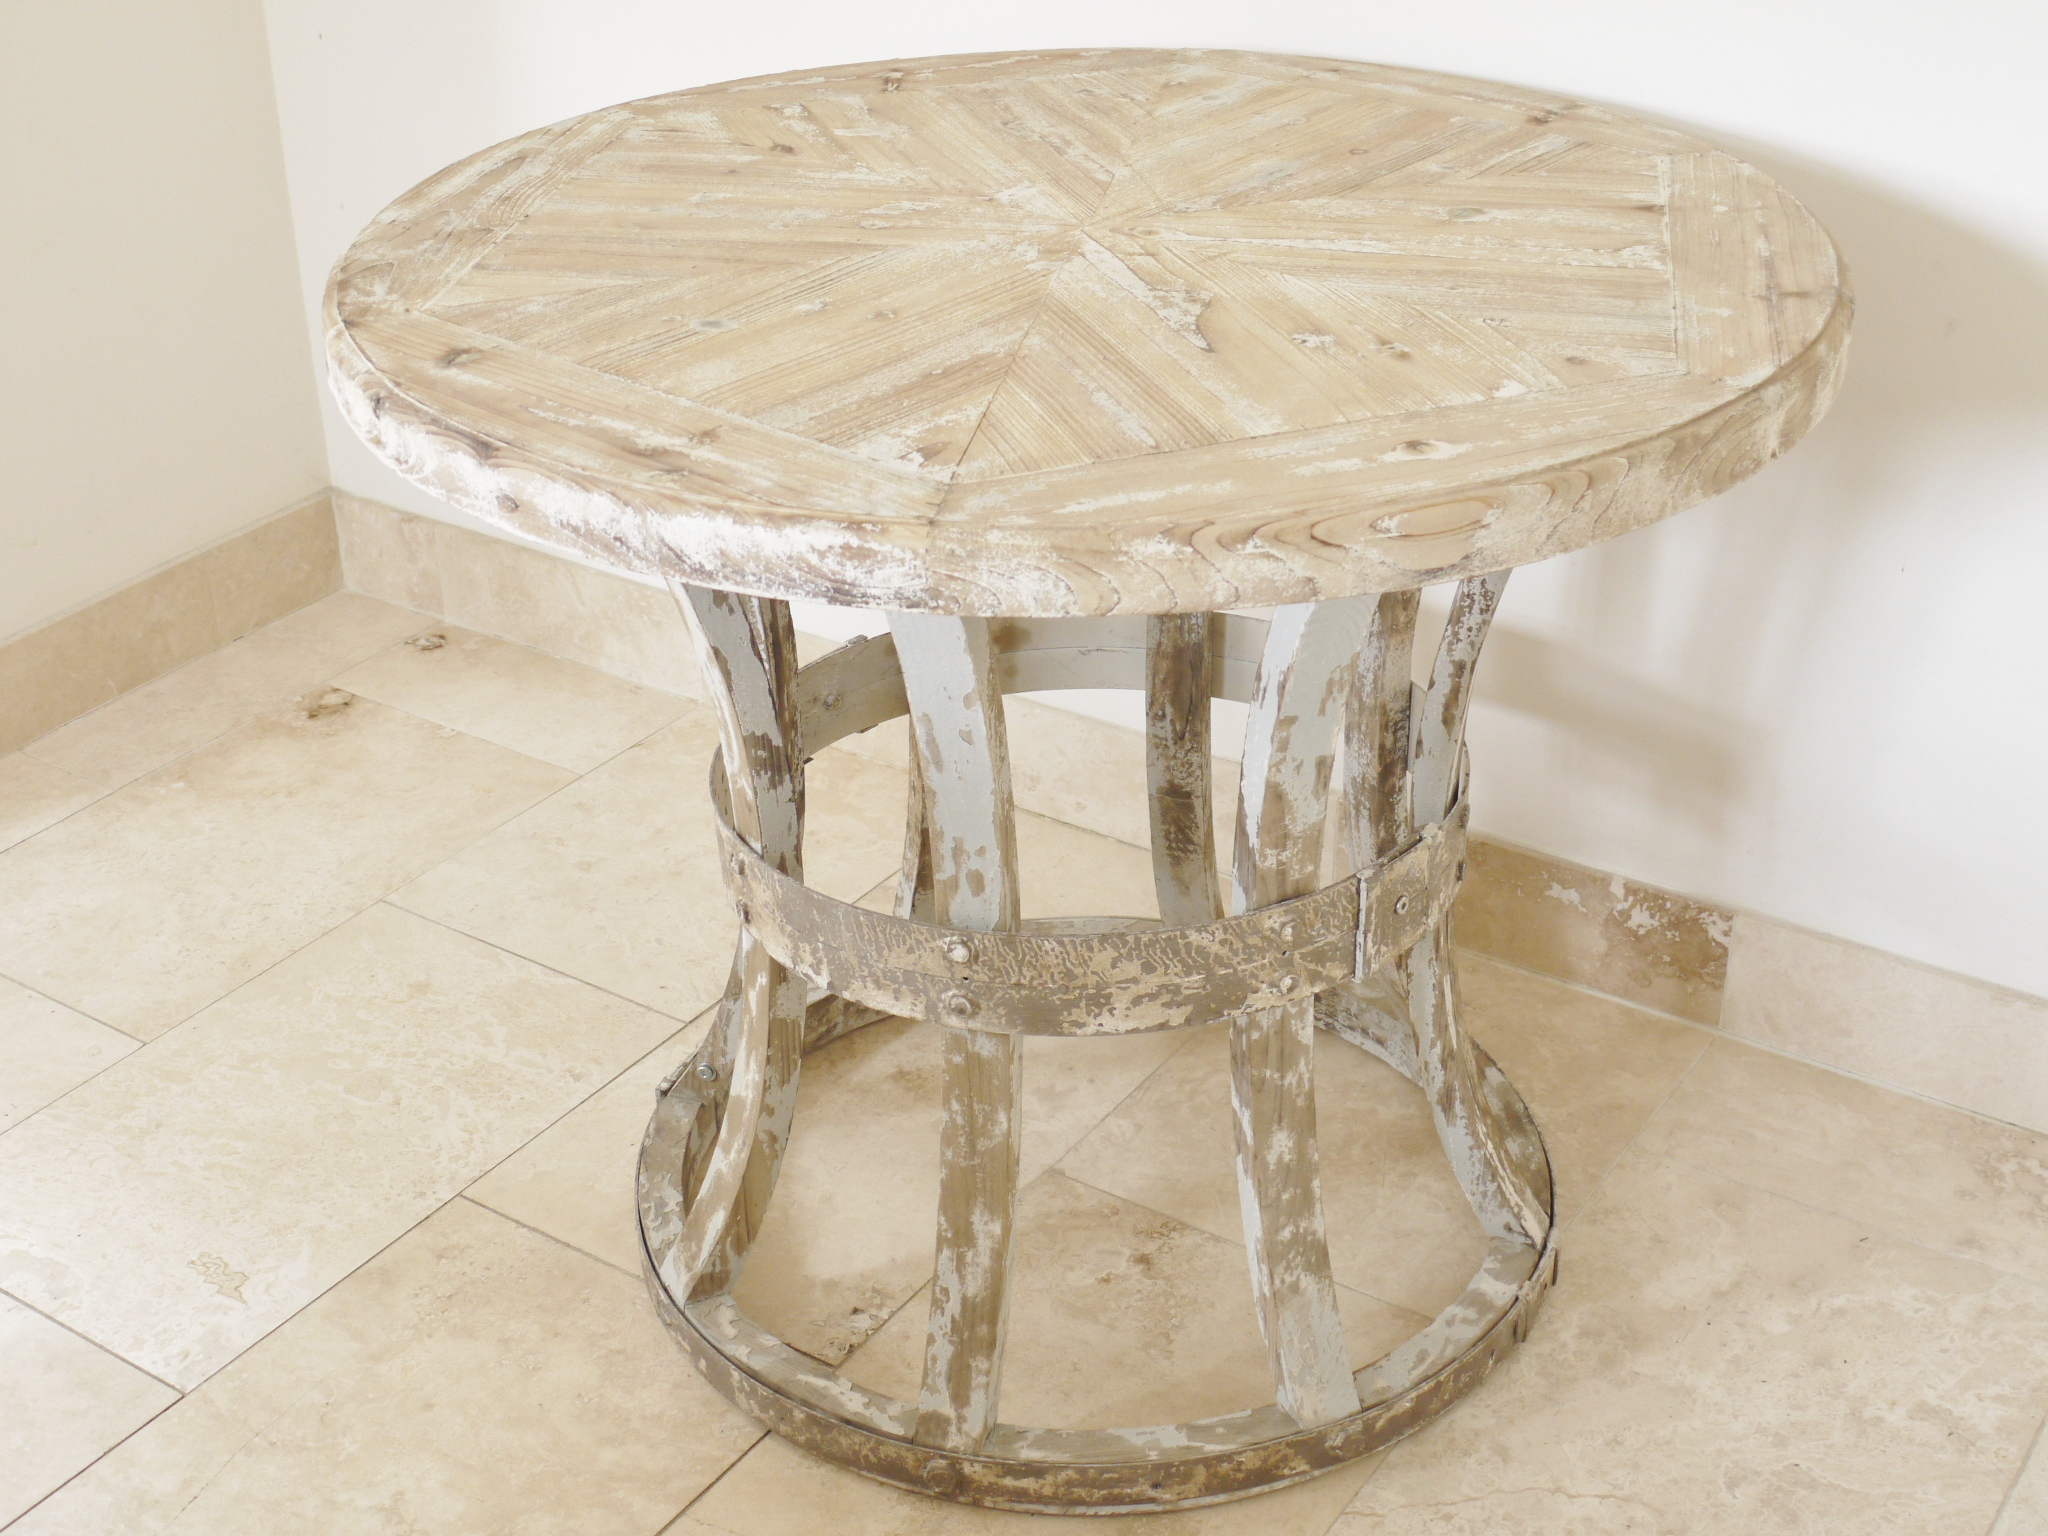 Round wooden distressed style dining table melody maison for Distressed round dining table